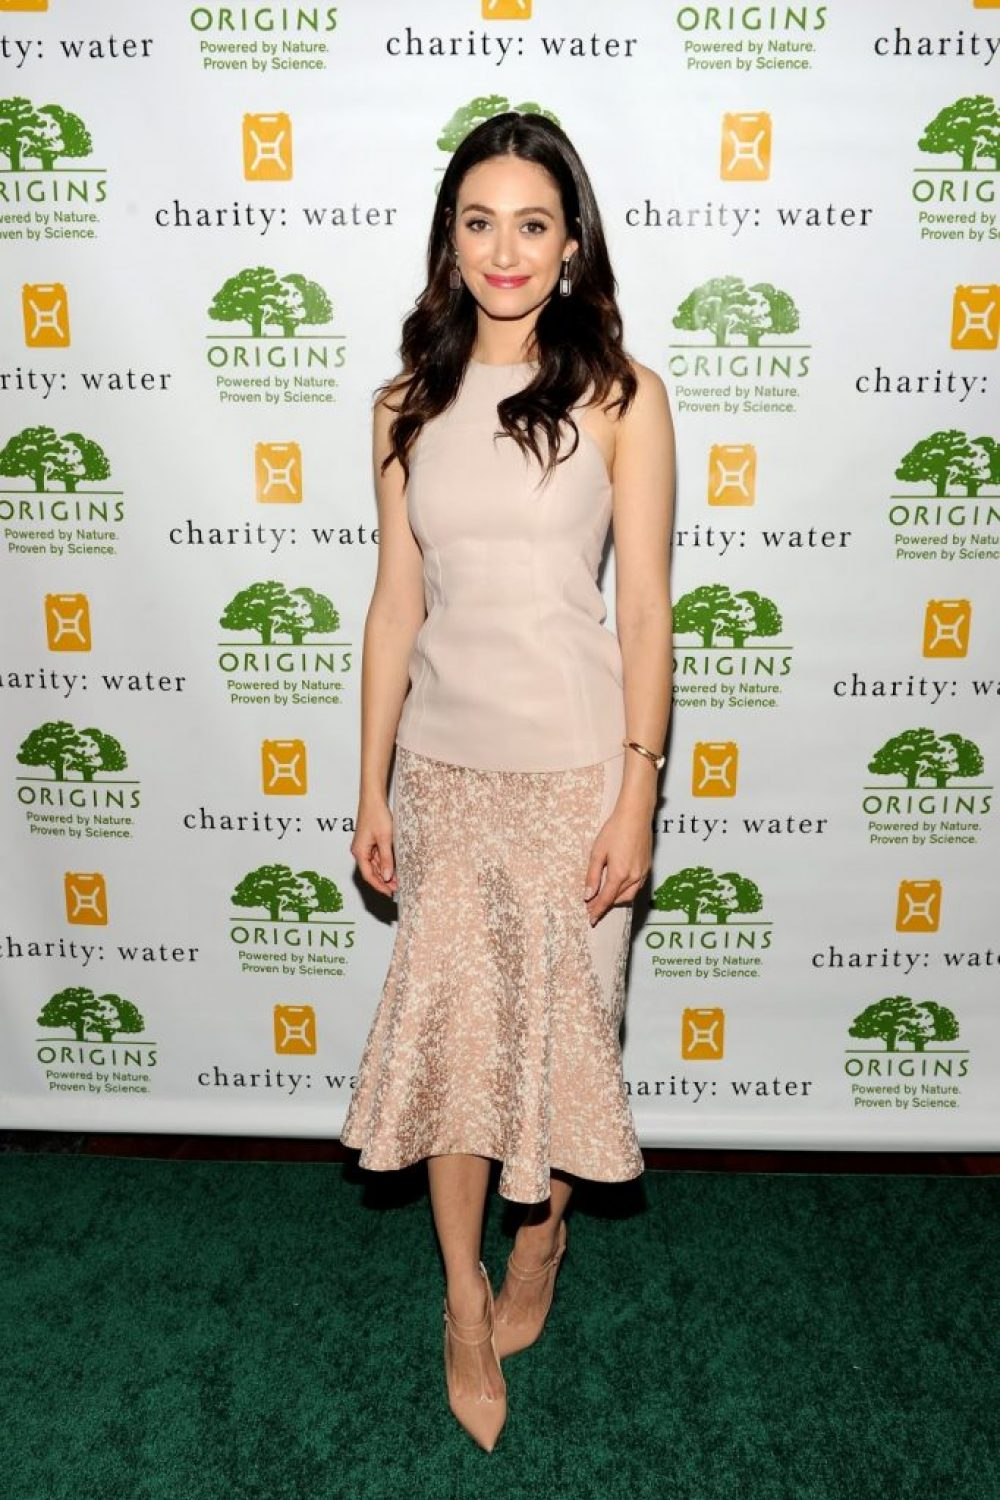 Emmy Rossum Hosts Origins Smarty Plants Event in NY